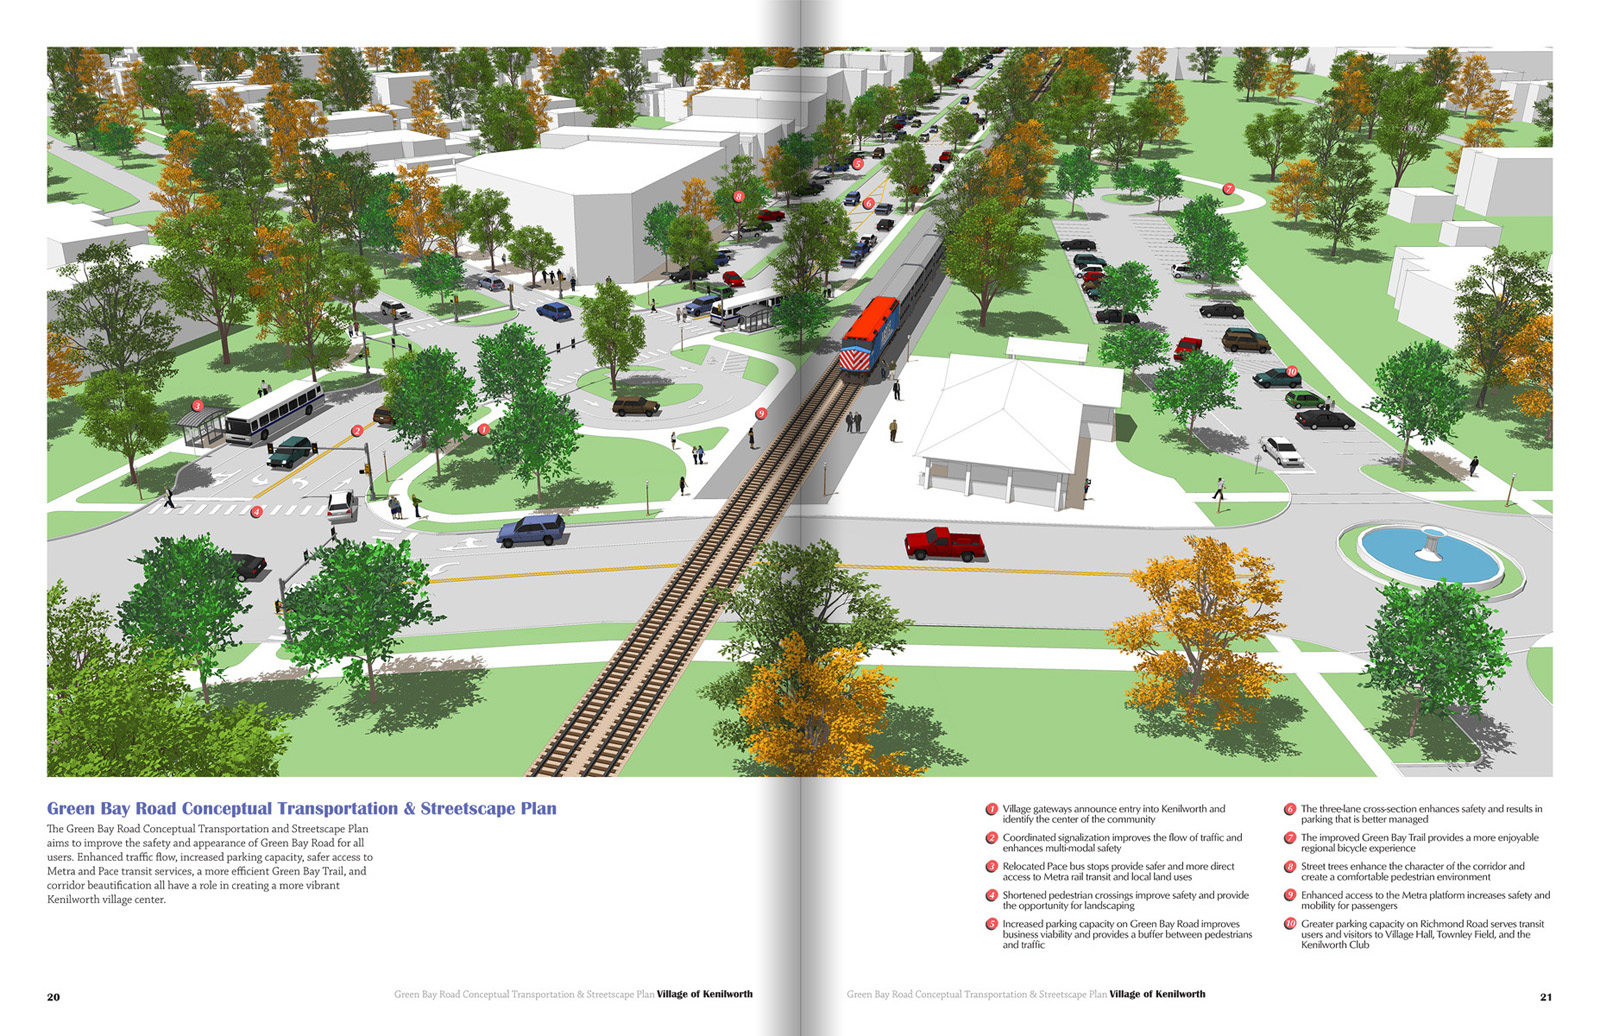 http://www.hlplanning.com/portals/wp-content/uploads/2014/10/Keniworth-Green-Bay-Road-Plan-24-and-25.jpg